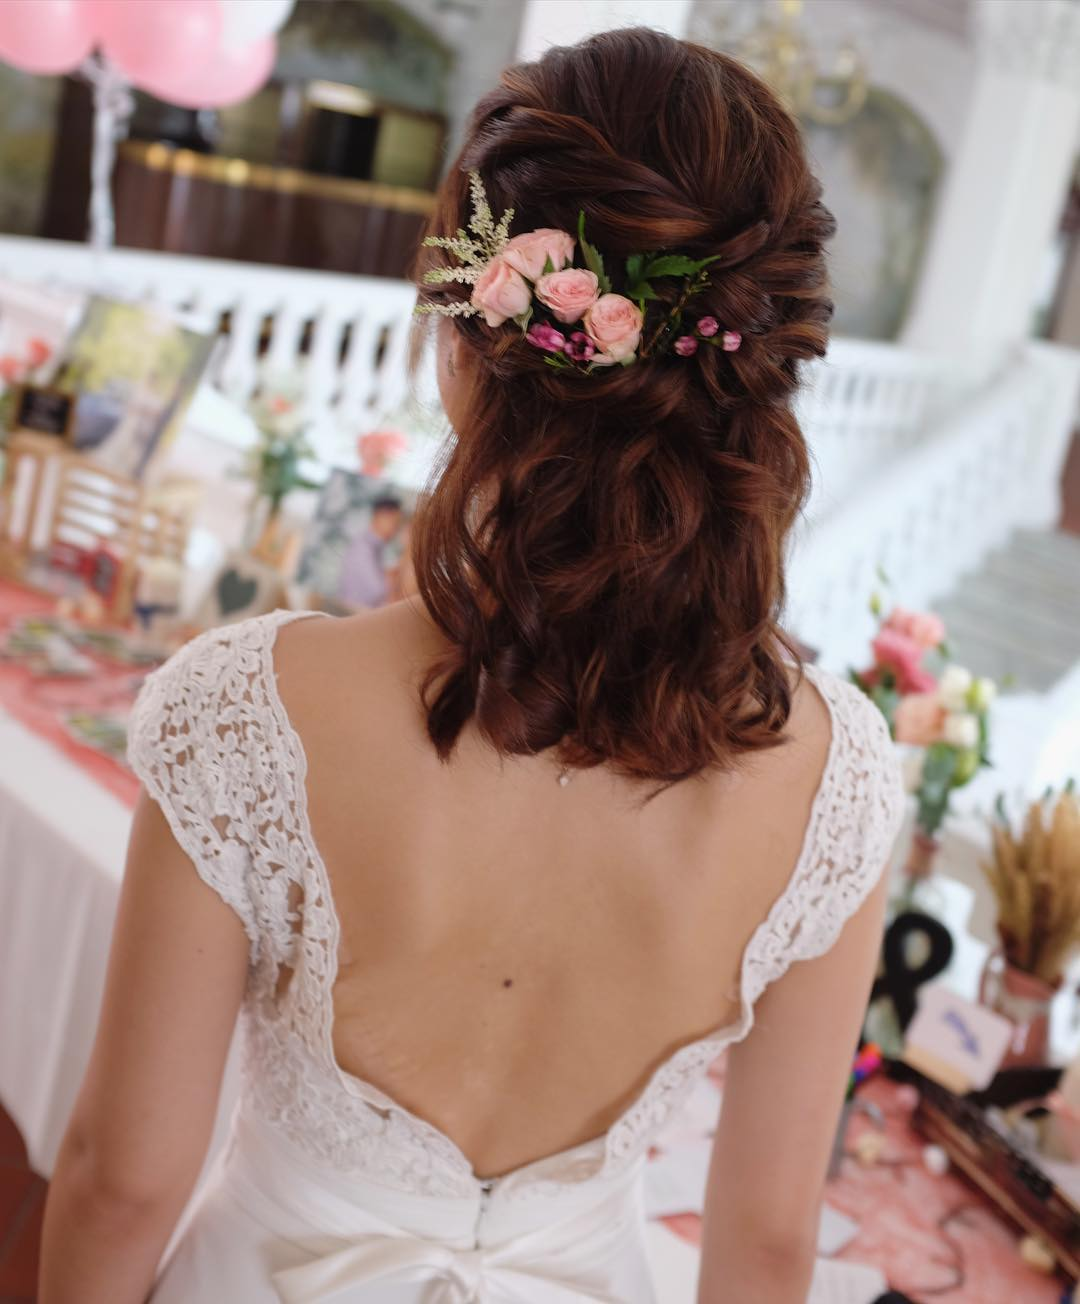 16 Gorgeous Medium Length Wedding Hairstyles: 30+ Beach Wedding Hairstyles Ideas, Designs